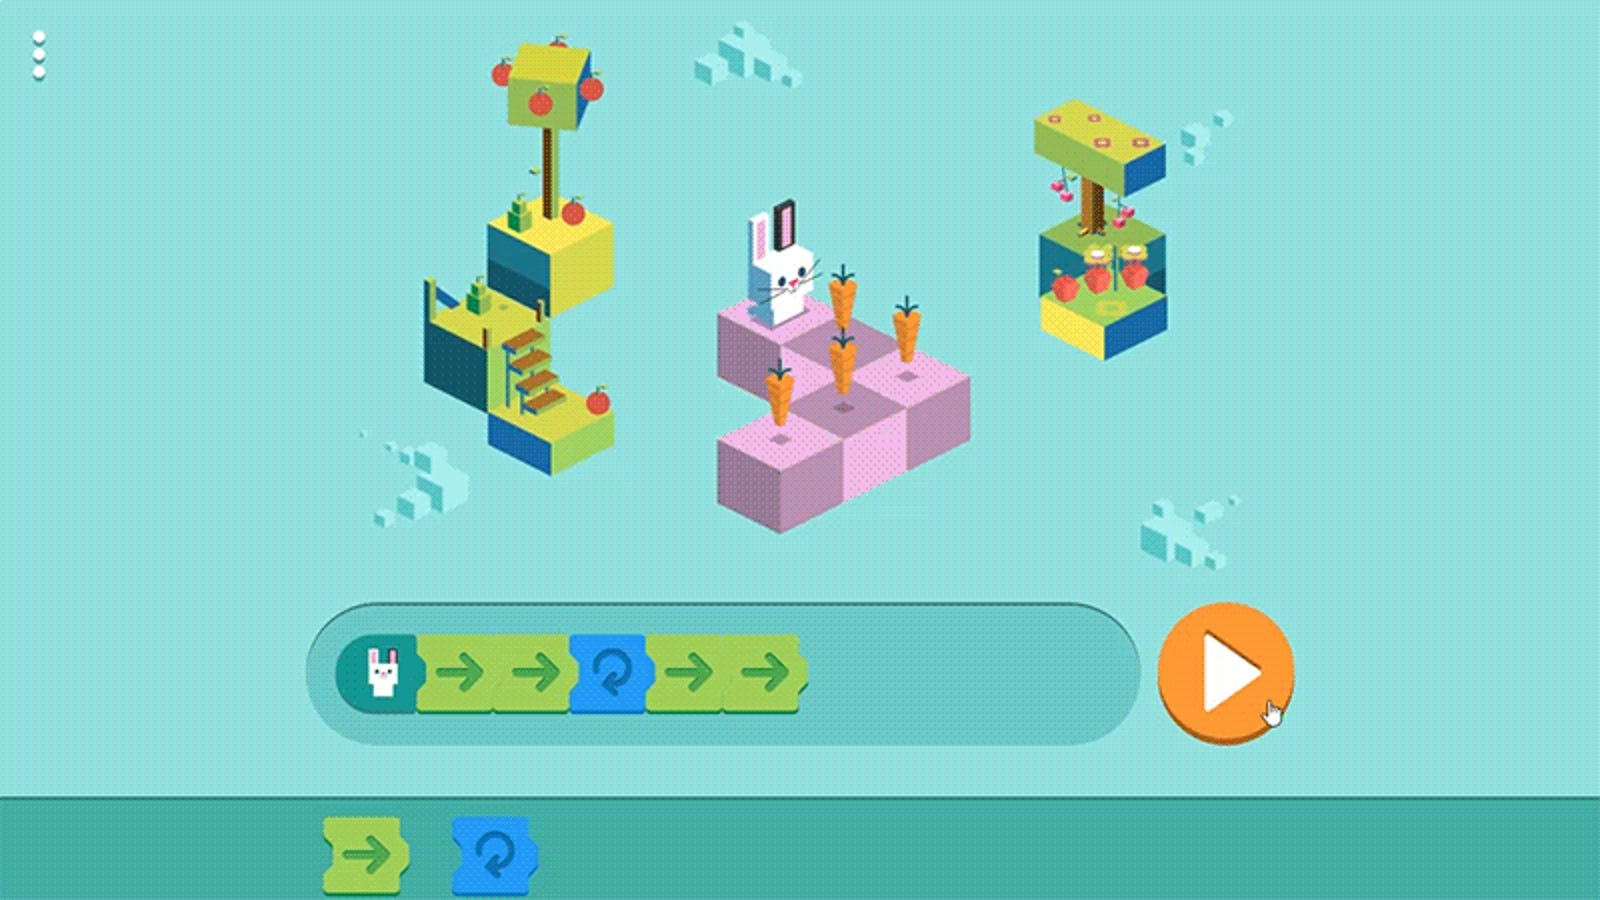 Latest Google Doodle Game Celebrates 50 Years Of Teaching